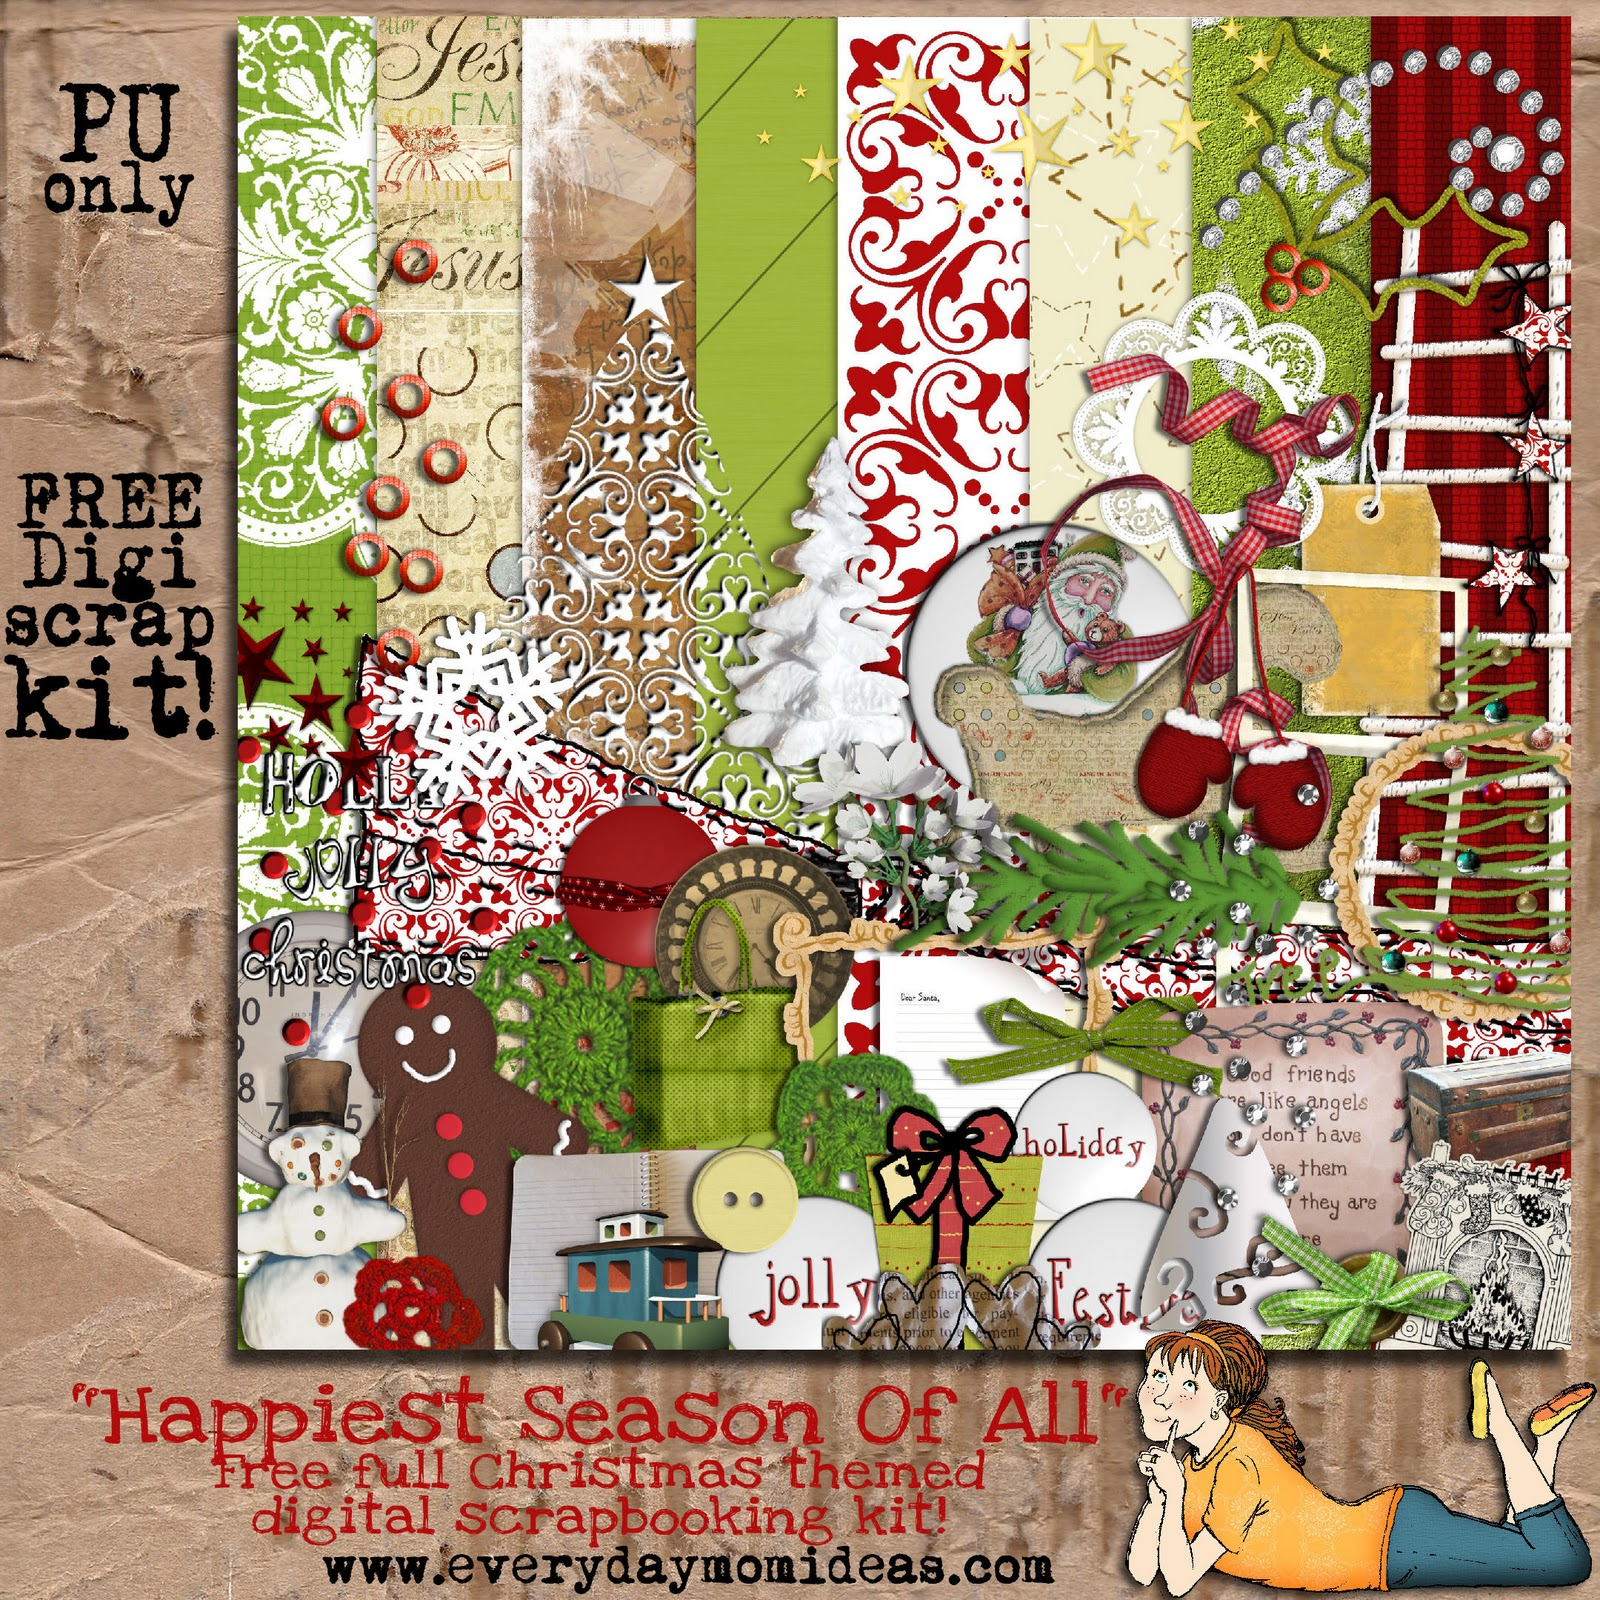 Digital scrapbooking kits free all about scrapbooking ideas -  Happiest Season Of All Free Digital Scrapbooking Kit Now Through Media Fire